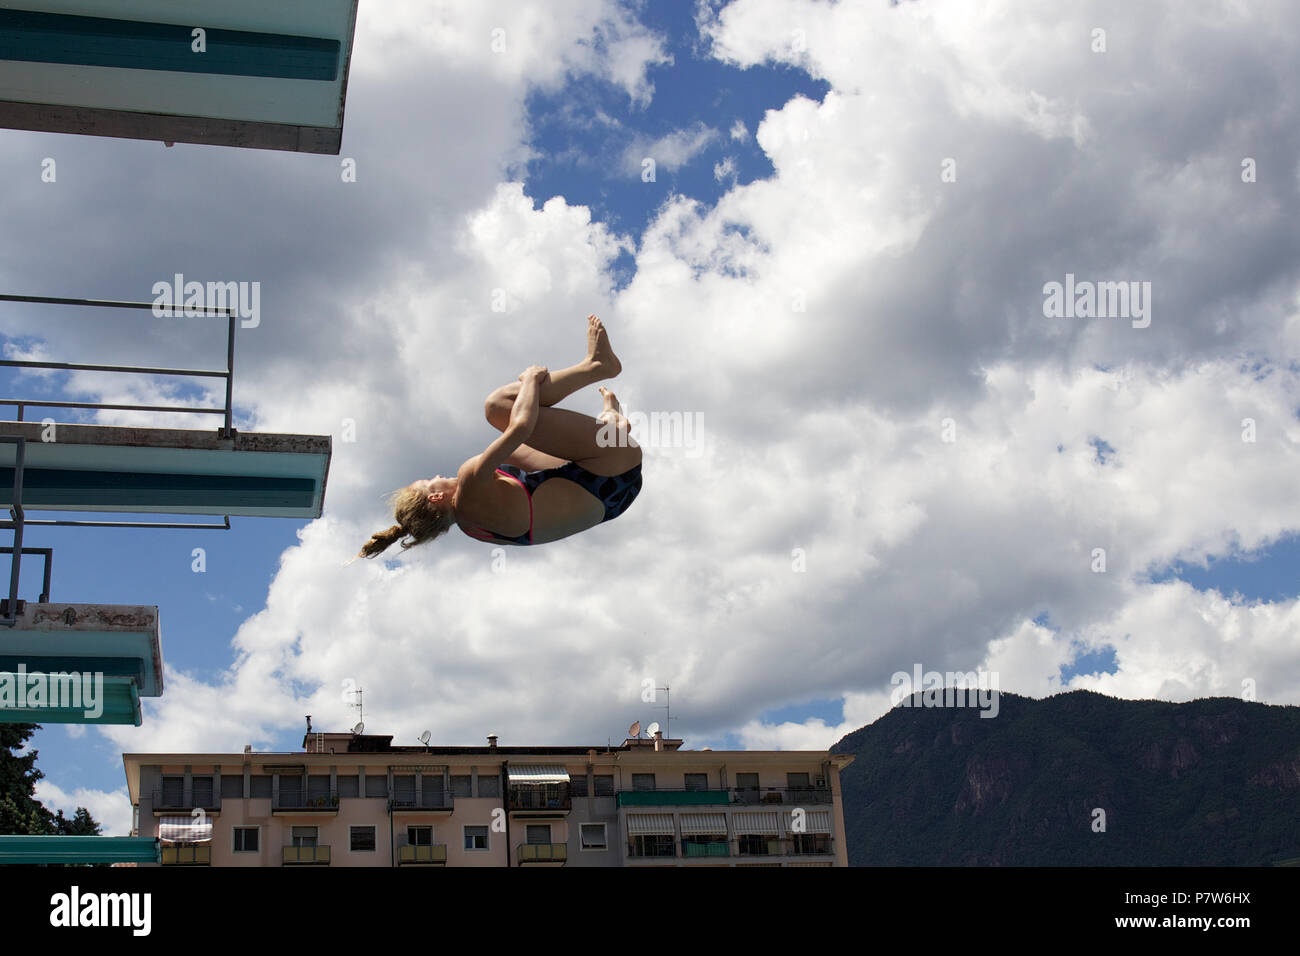 Bolzano, Italy. 07th, Jul 2018. Tuxen Hellen from Norway competes in the Women's 3m Springboard Diving Semi-Final on day two at Bolzano Lido, during 24th FINA Diving Grand Prix in Bolzano, Italy, 07 July 2018. (PHOTO) Alejandro Sala/Alamy Live News Stock Photo